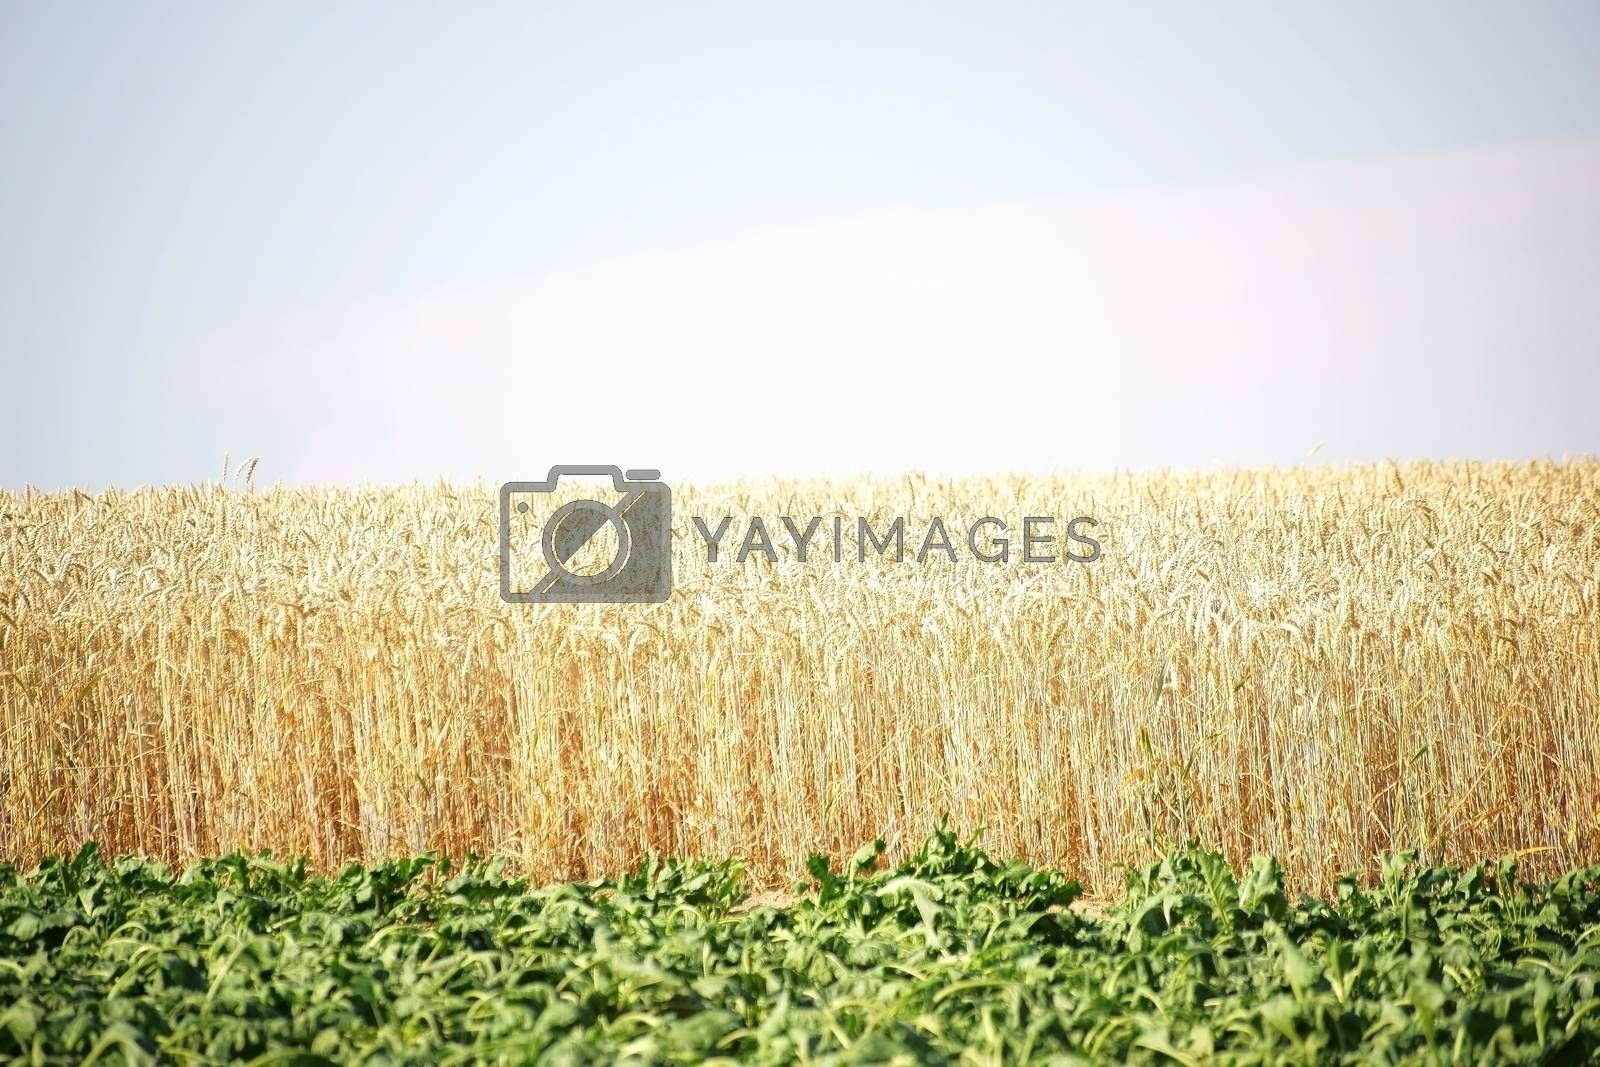 A field with green leaves of sugar beet, which withered by the drought in front of a cornfield with dried corn stalks.